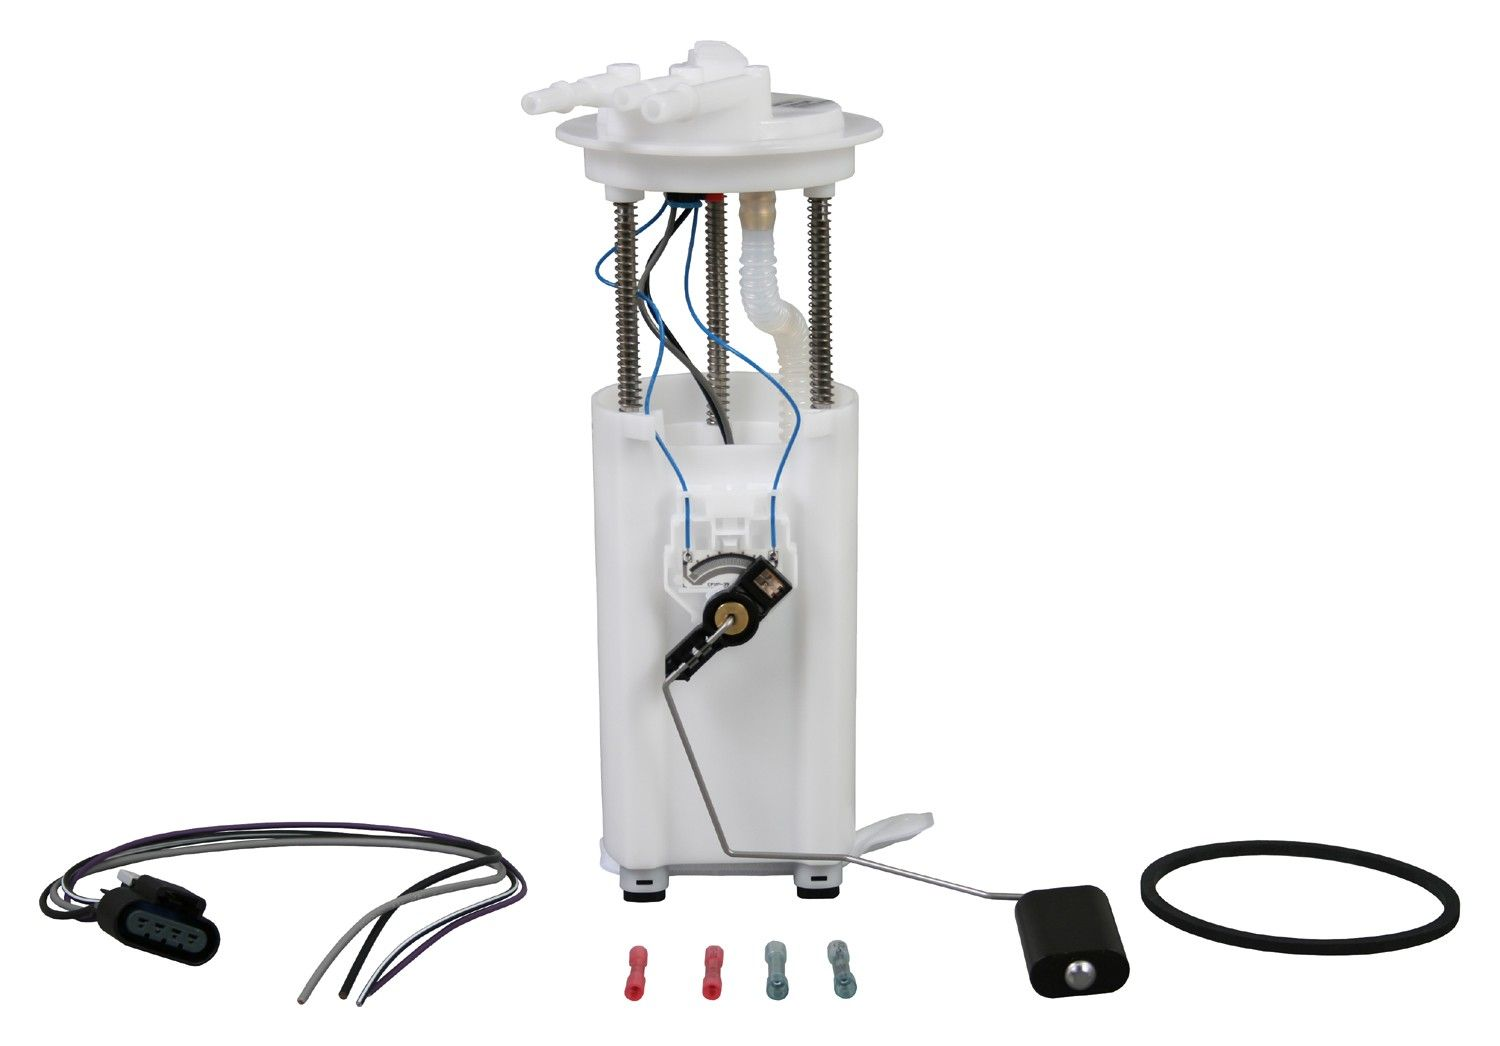 Chevrolet Tahoe Fuel Pump Module Assembly Replacement Acdelco Chevy Wiring 1996 N A 8 Cyl 57l Airtex E3932m Harness Recommended Includes Sending Unit